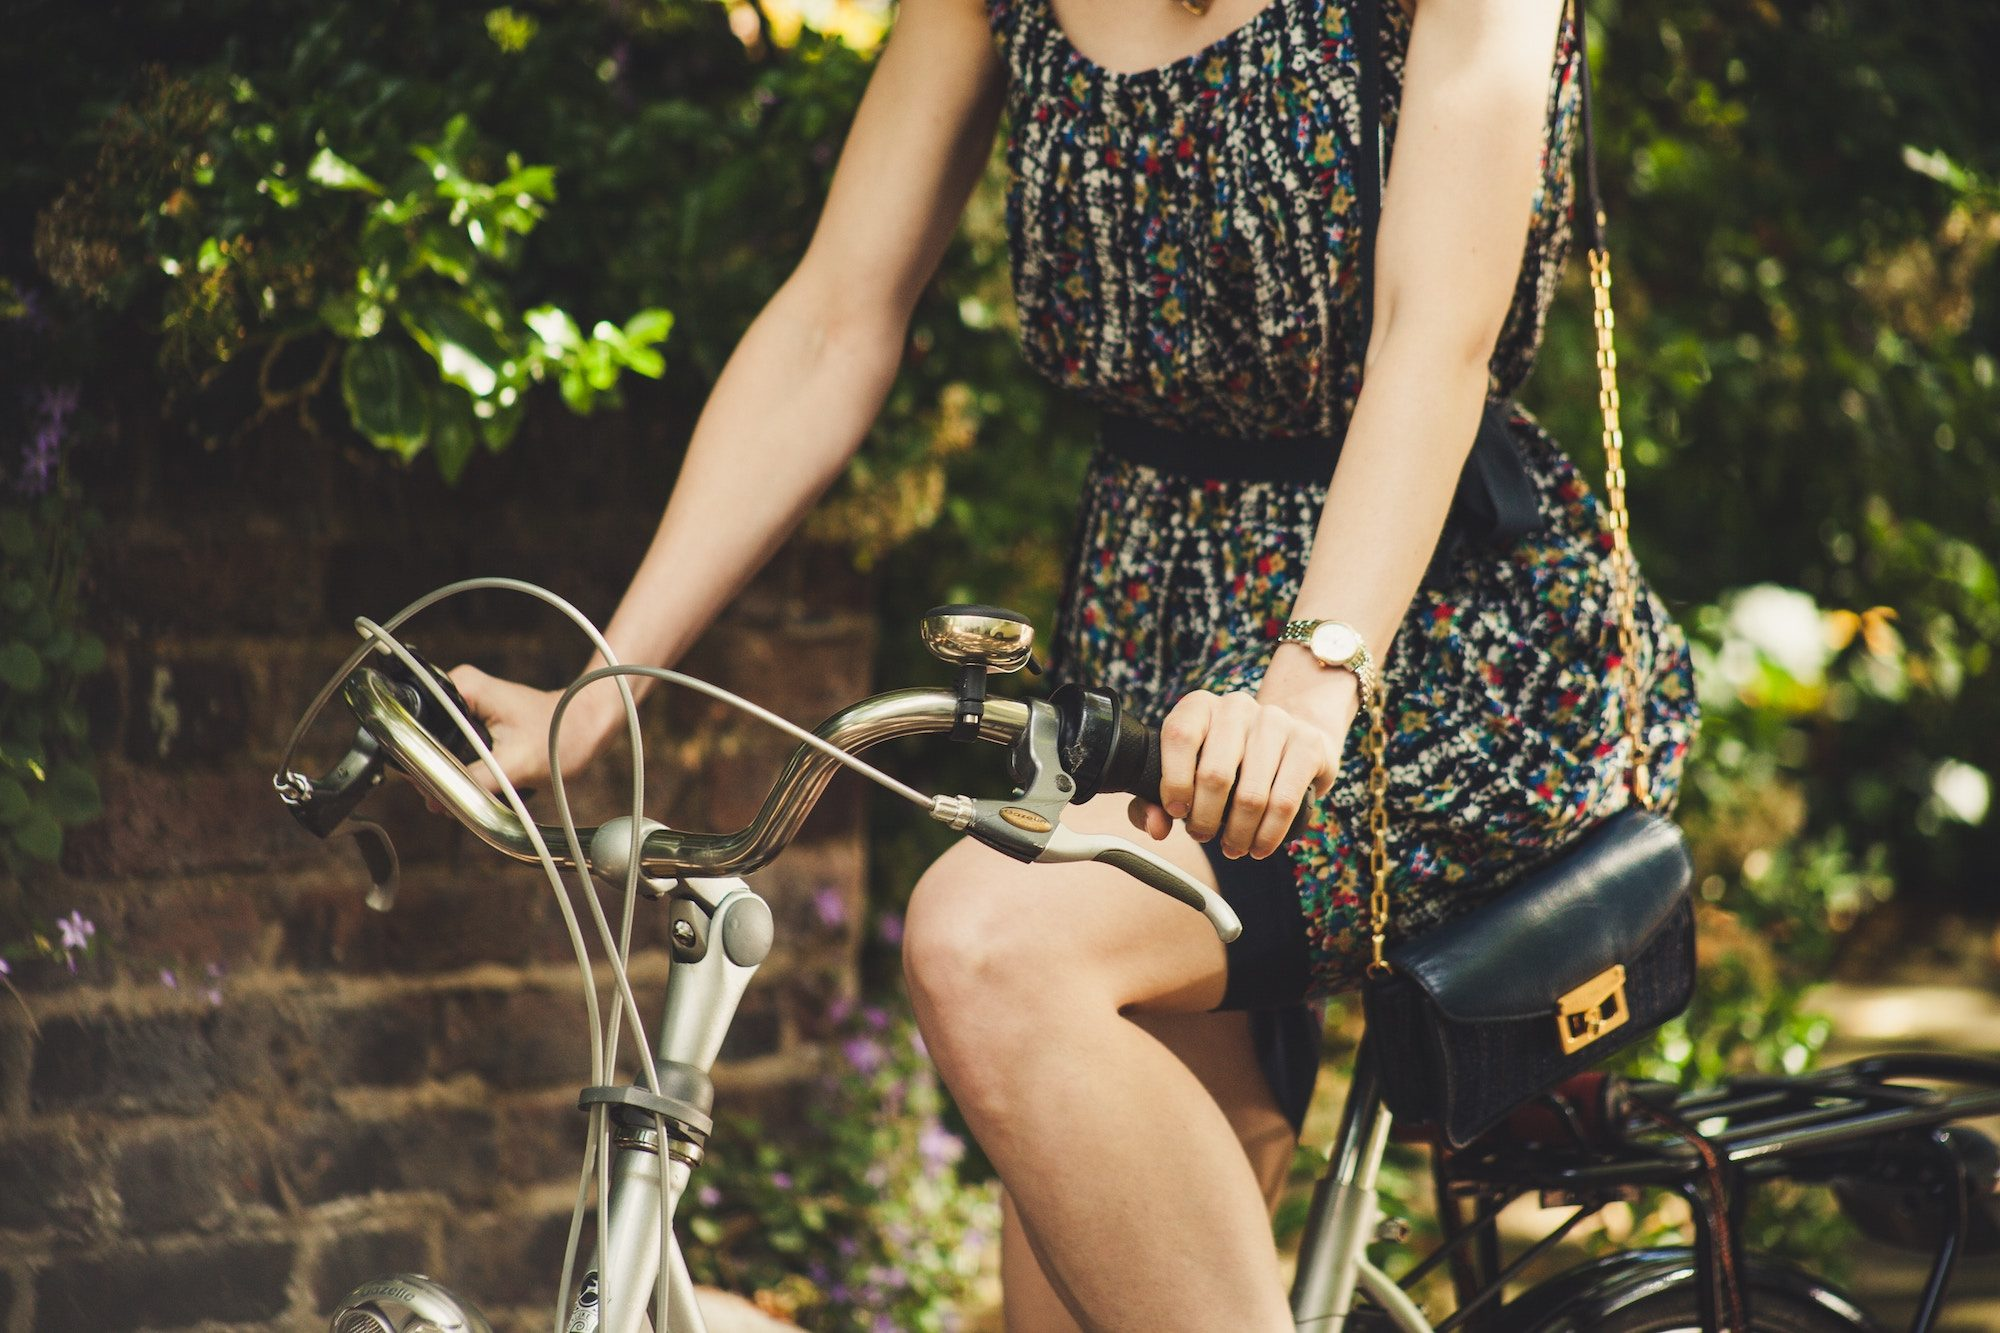 In summer, Londoners get around mostly on their bikes, like this girl wearing a summer dress.